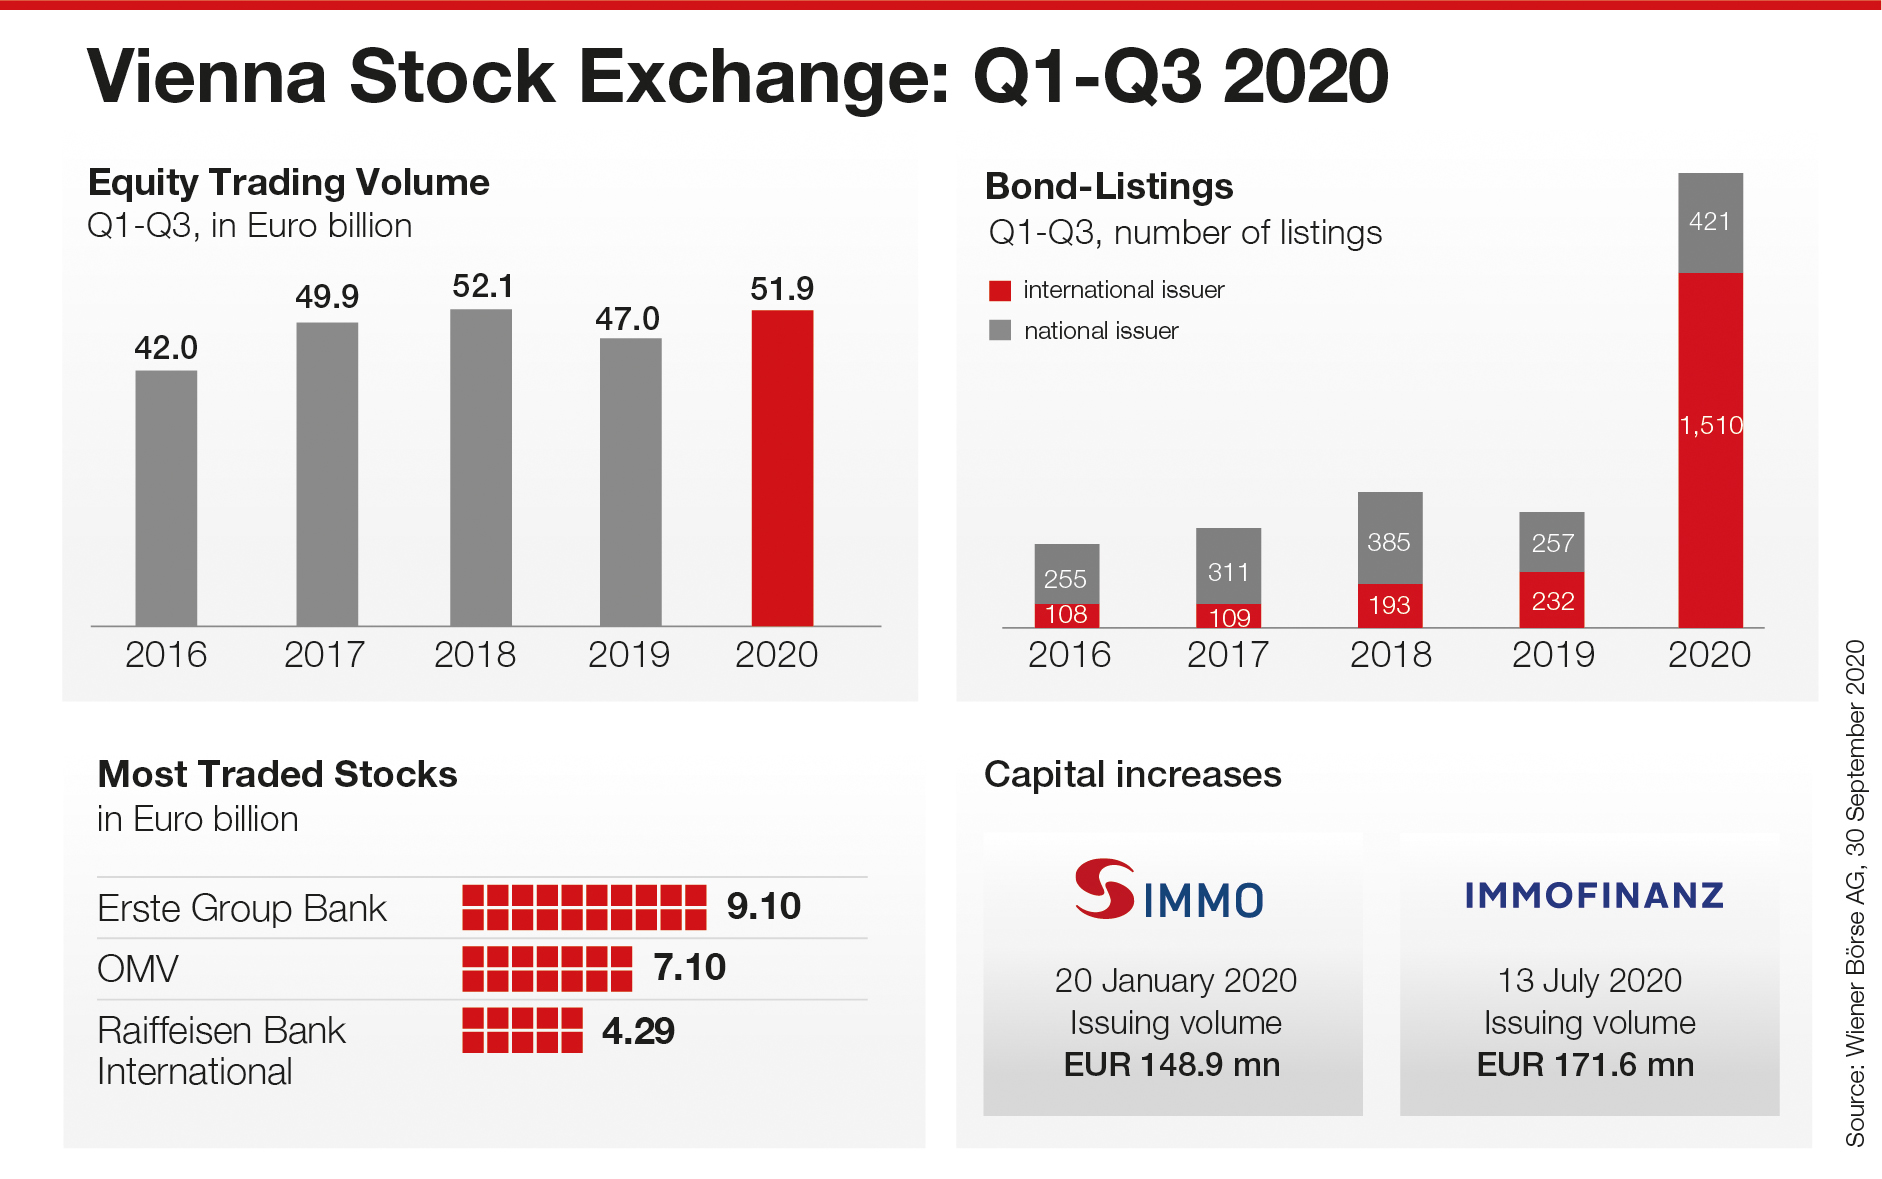 Trading on the Vienna Stock Exchange Q1-Q3 2020